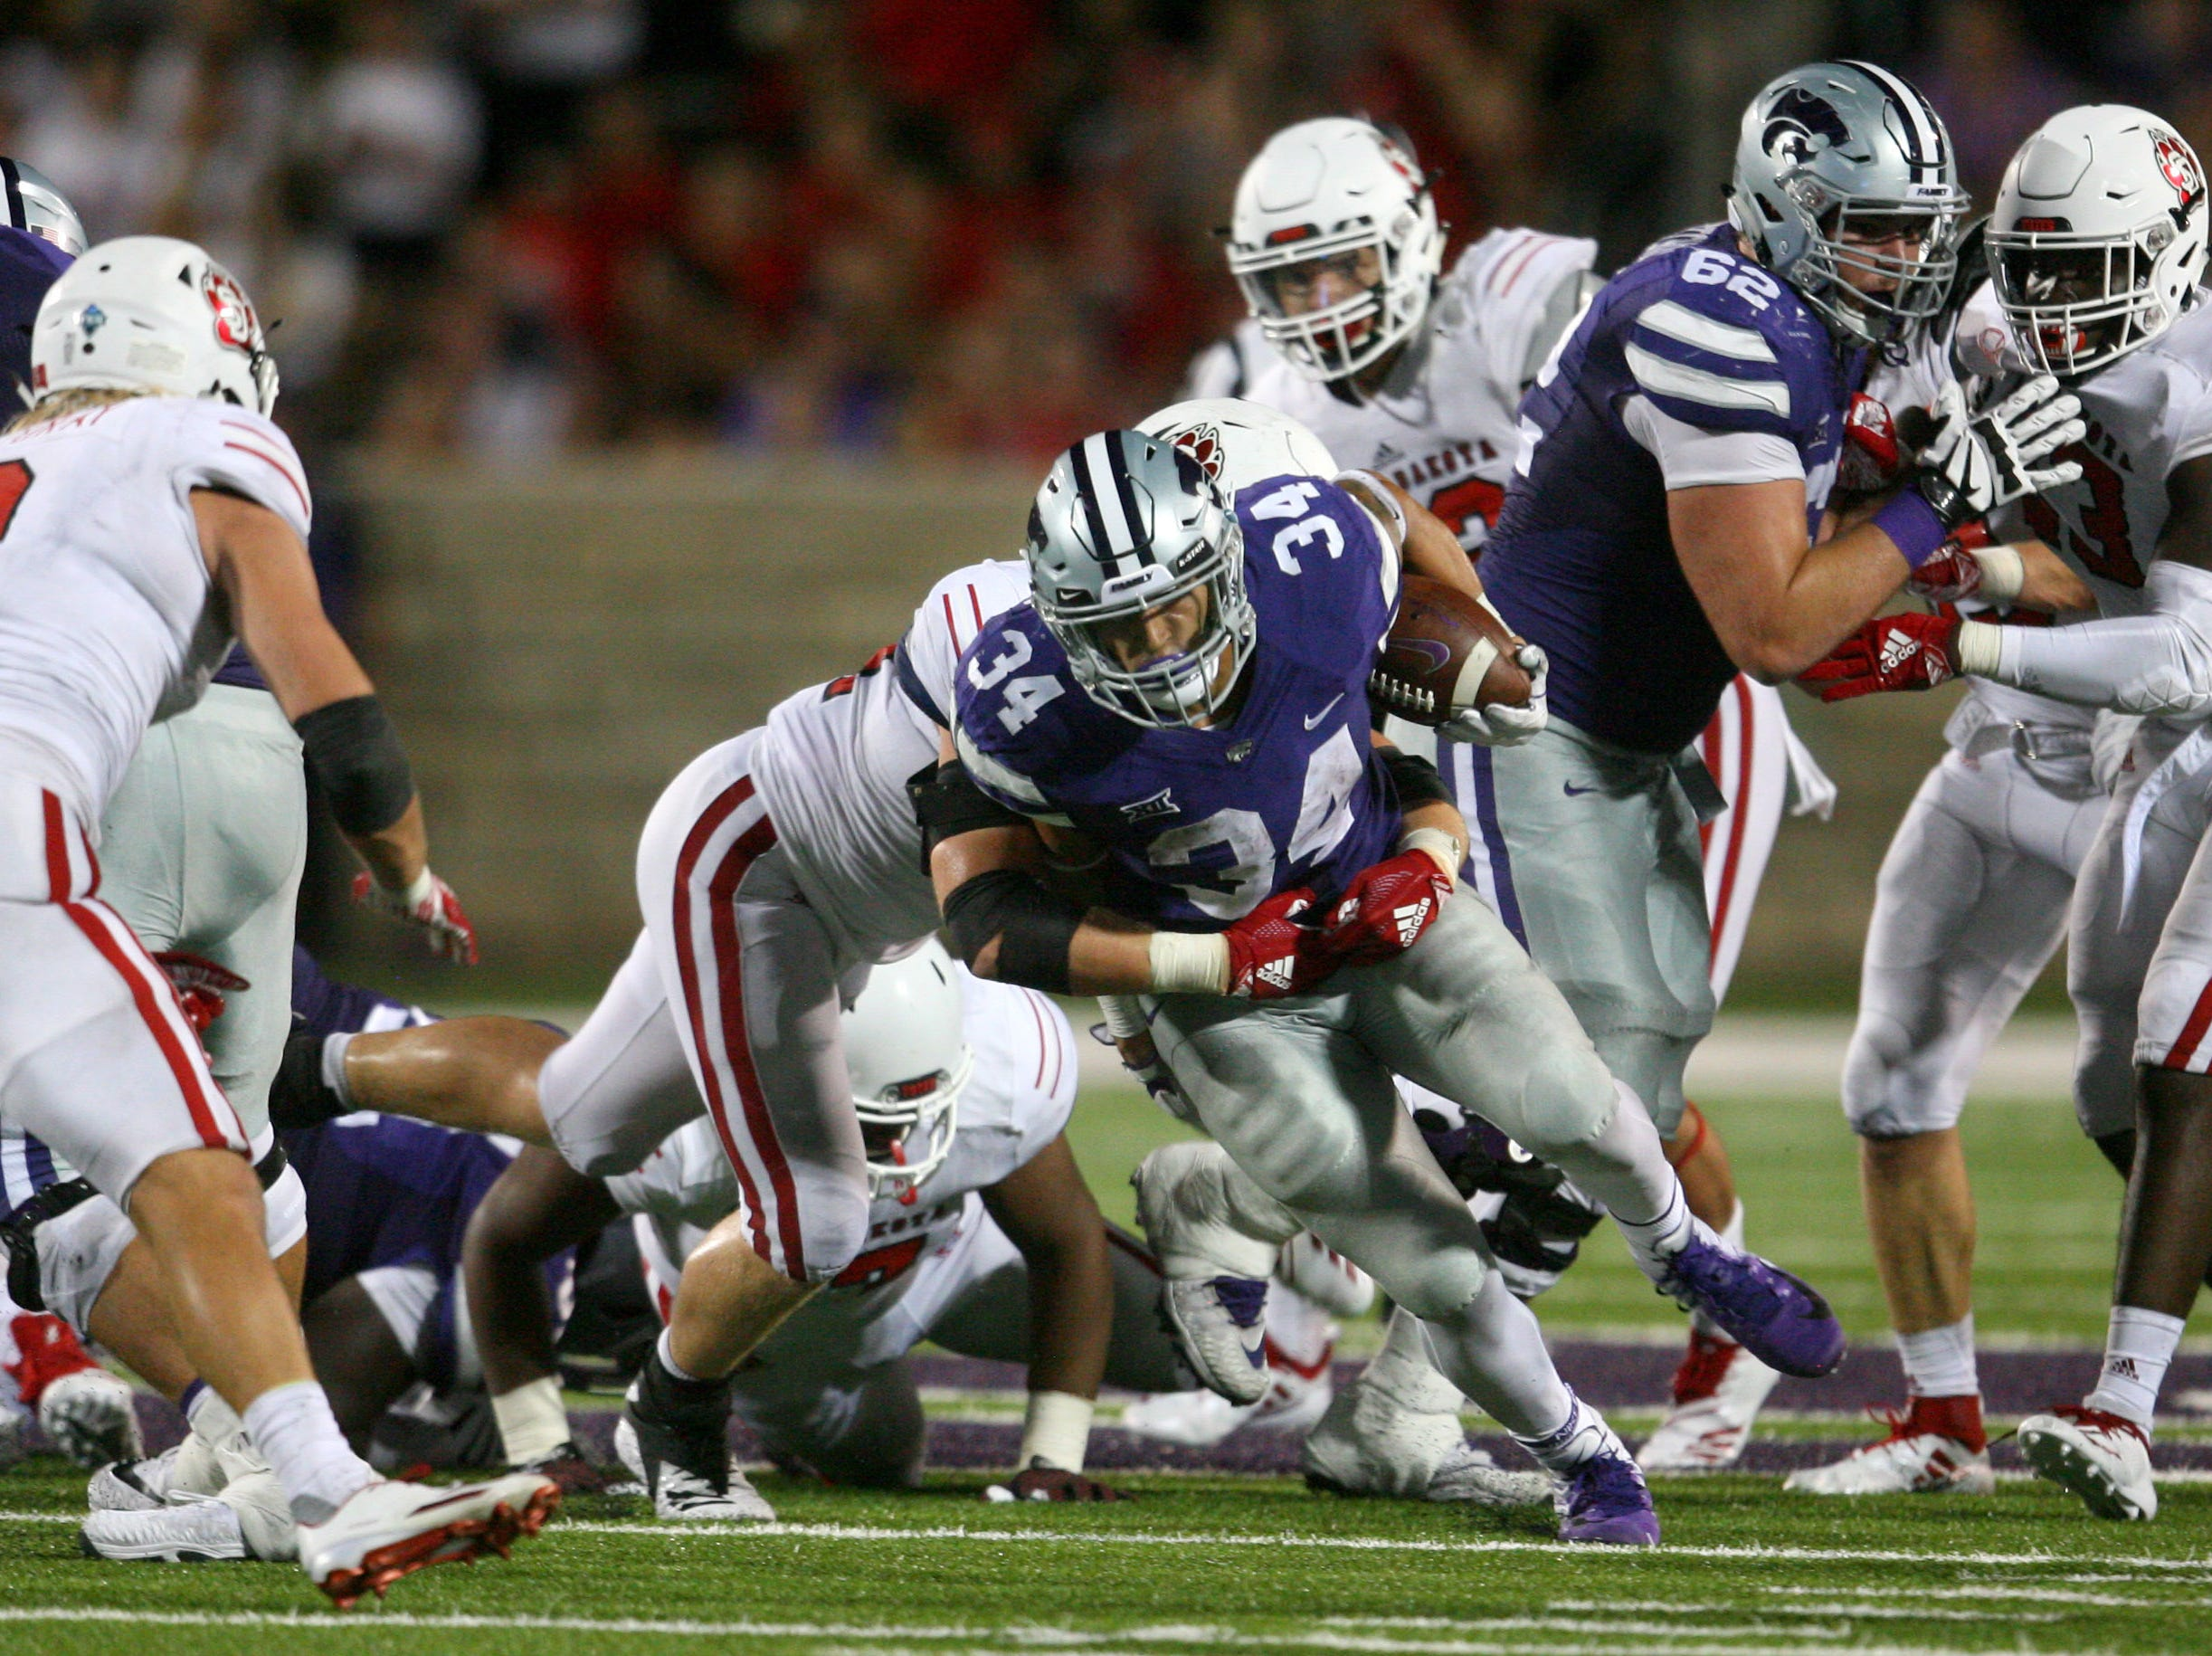 Sep 1, 2018; Manhattan, KS, USA; Kansas State Wildcats running back Alex Barnes (34) is tackled by South Dakota Coyotes defensive lineman Darin Greenfield (44) during the fourth quarter at Bill Snyder Family Stadium. The Wildcats won 27-24. Mandatory Credit: Scott Sewell-USA TODAY Sports